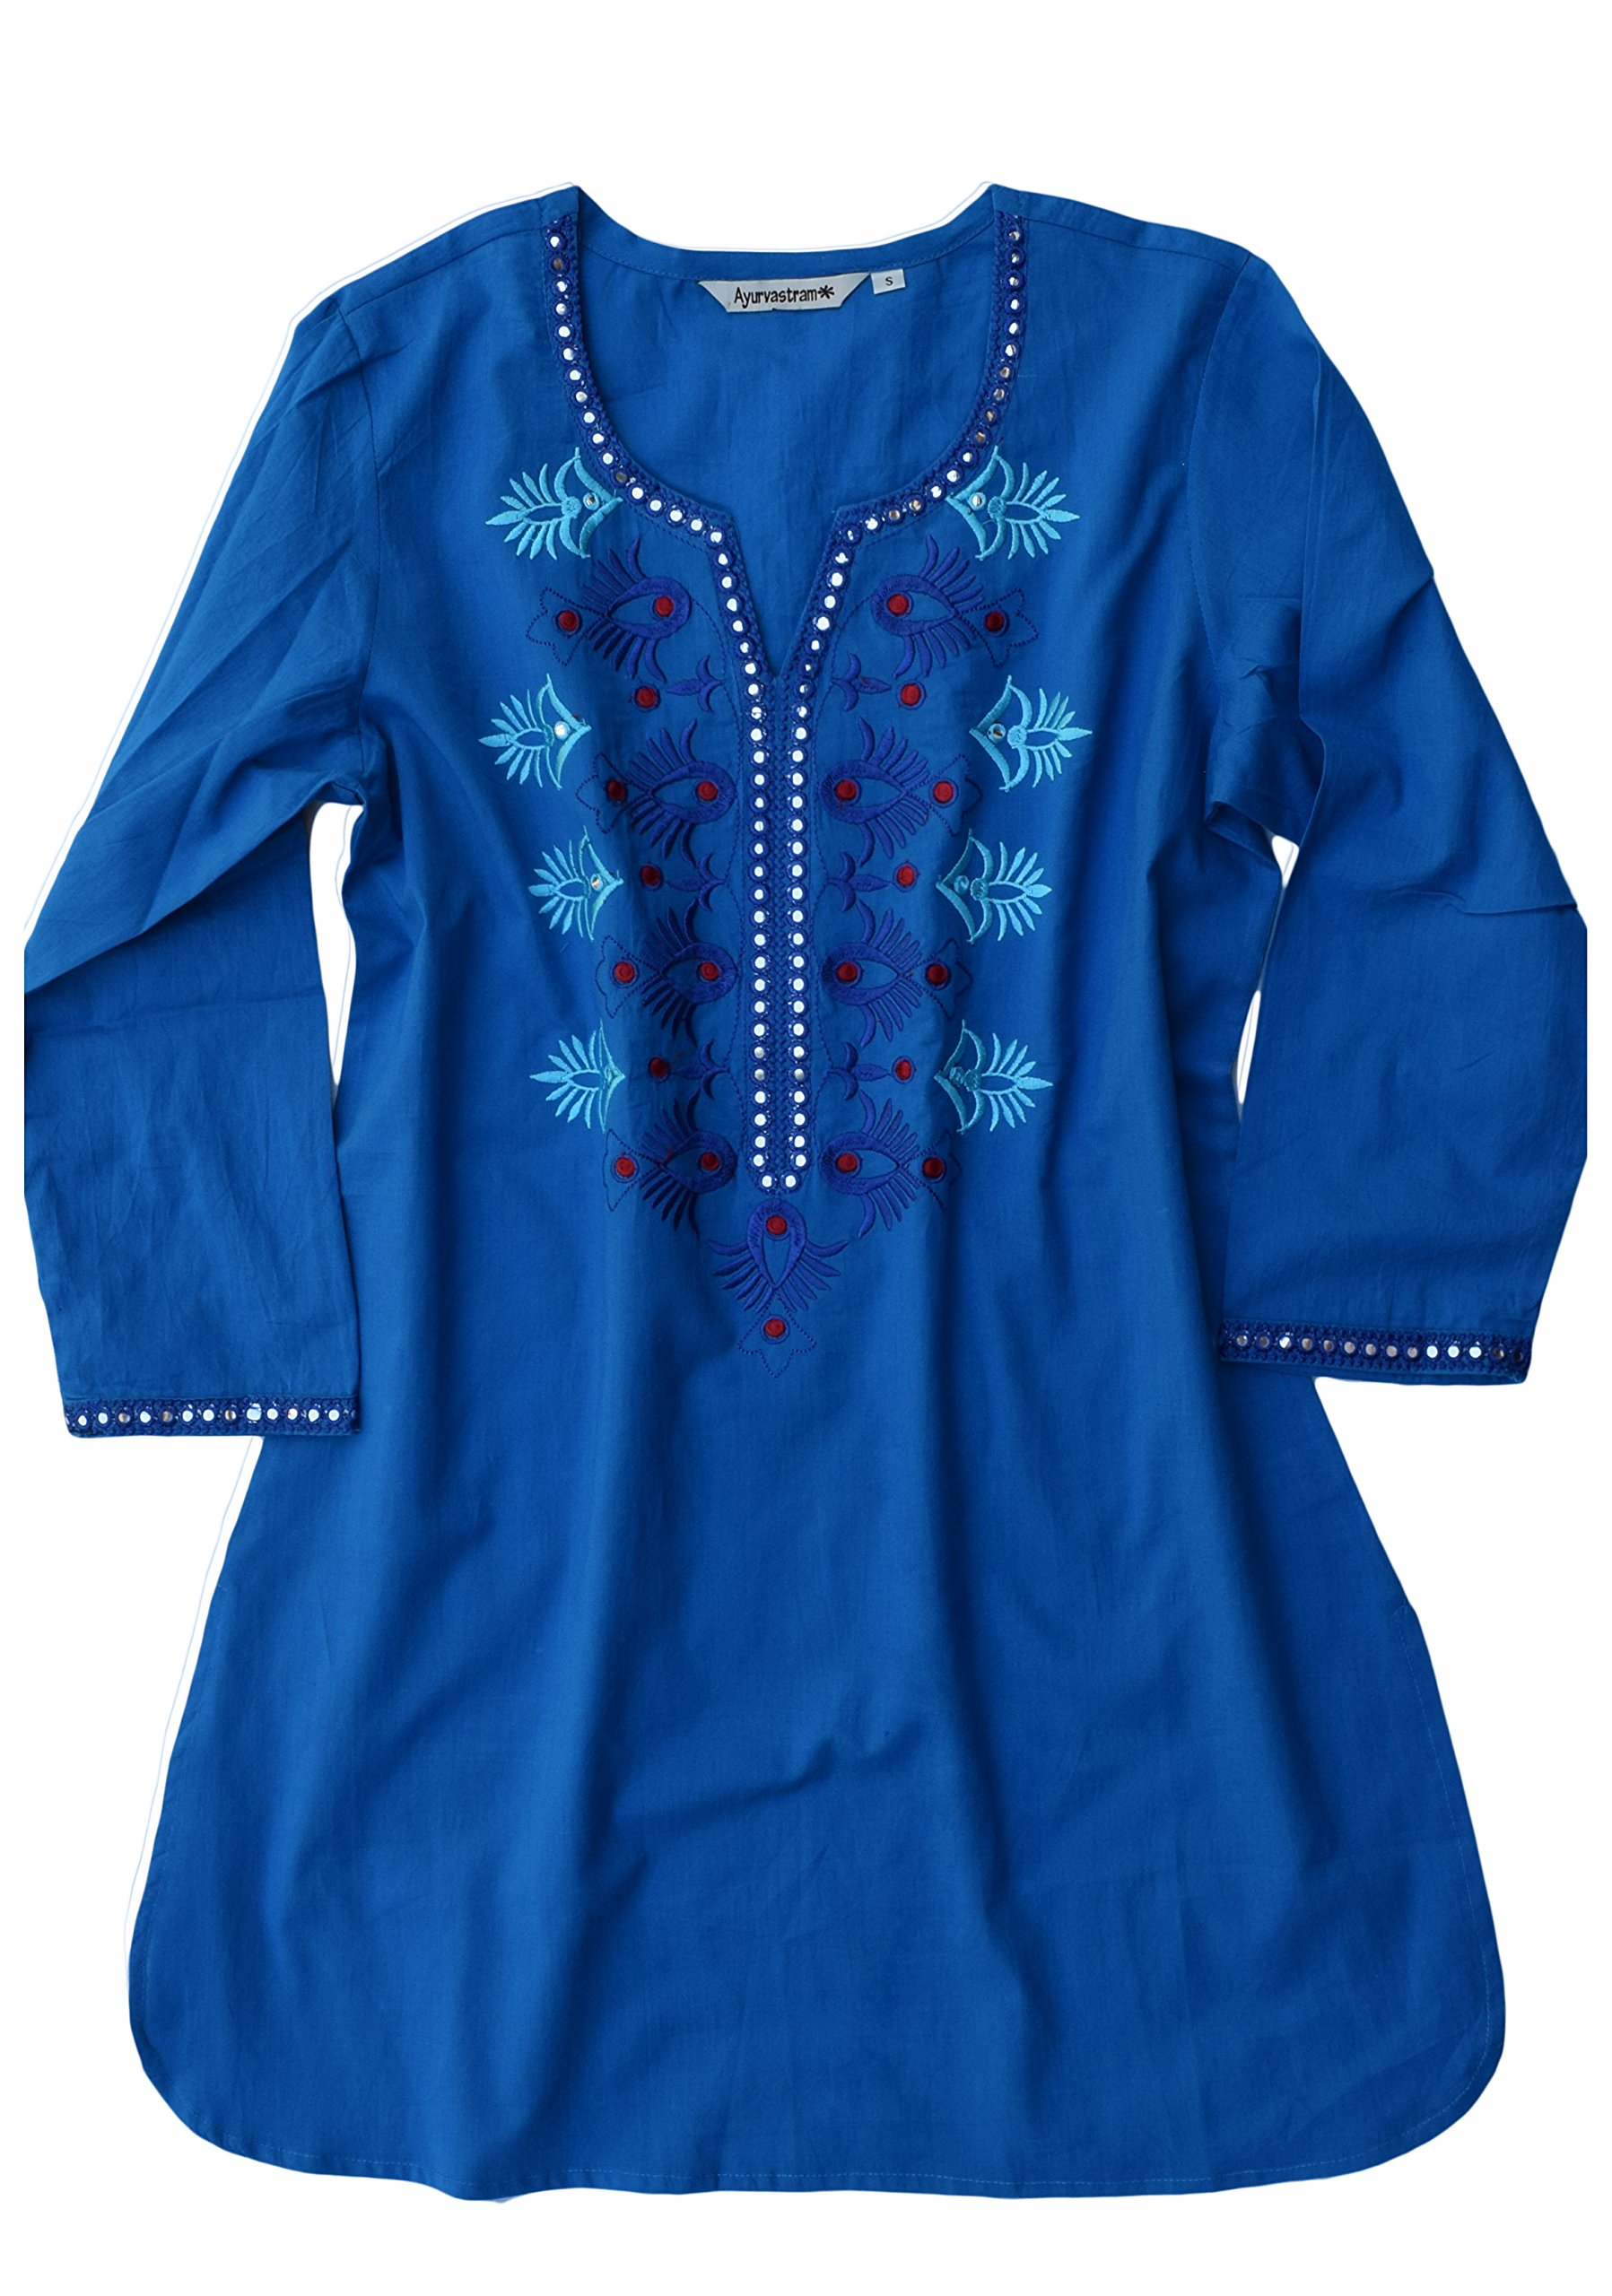 Ayurvastram Ivy Pure Cotton, Embroidered Tunic, Top, Kurti: Blue: Sz3X